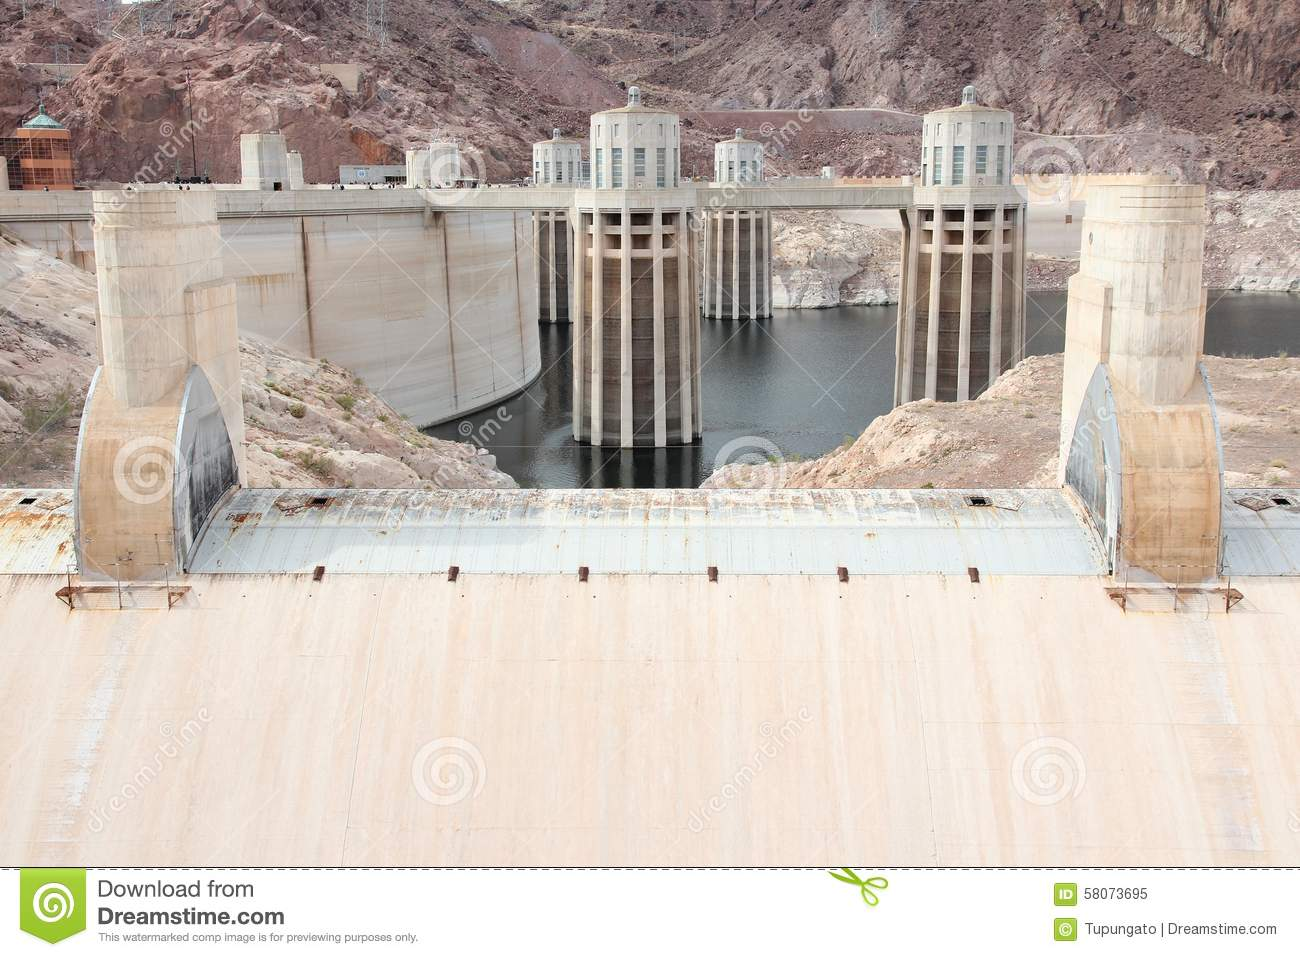 Hoover (AL) United States  City pictures : Hoover Dam in United States. Hydroelectric power station on the border ...